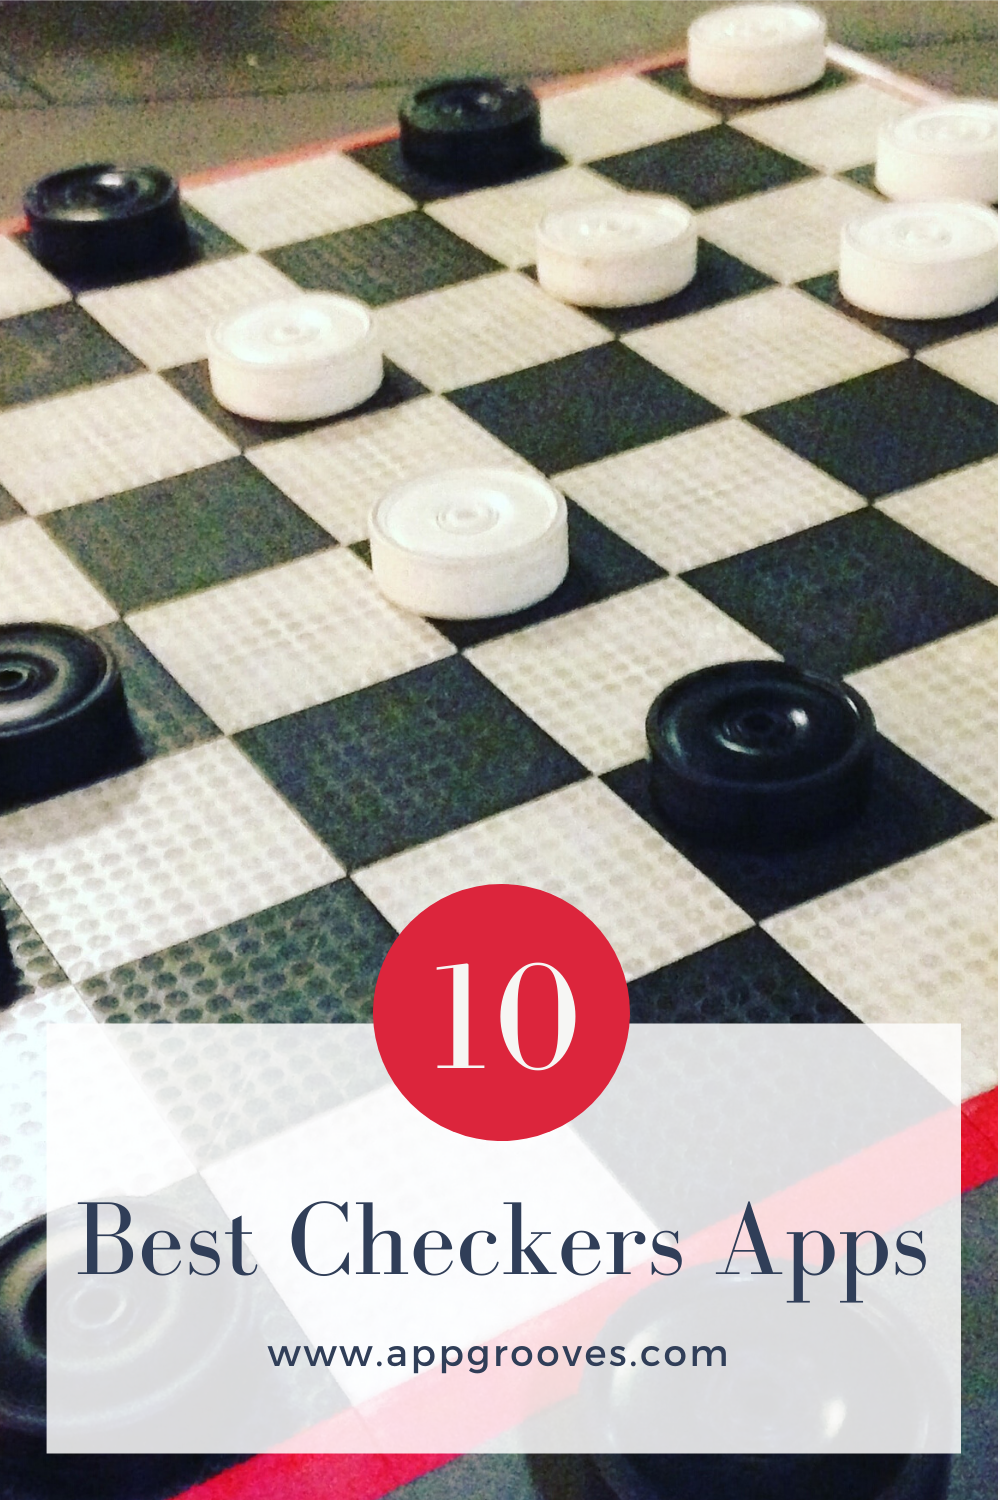 Honestly, there's nothing quite like a game of checkers